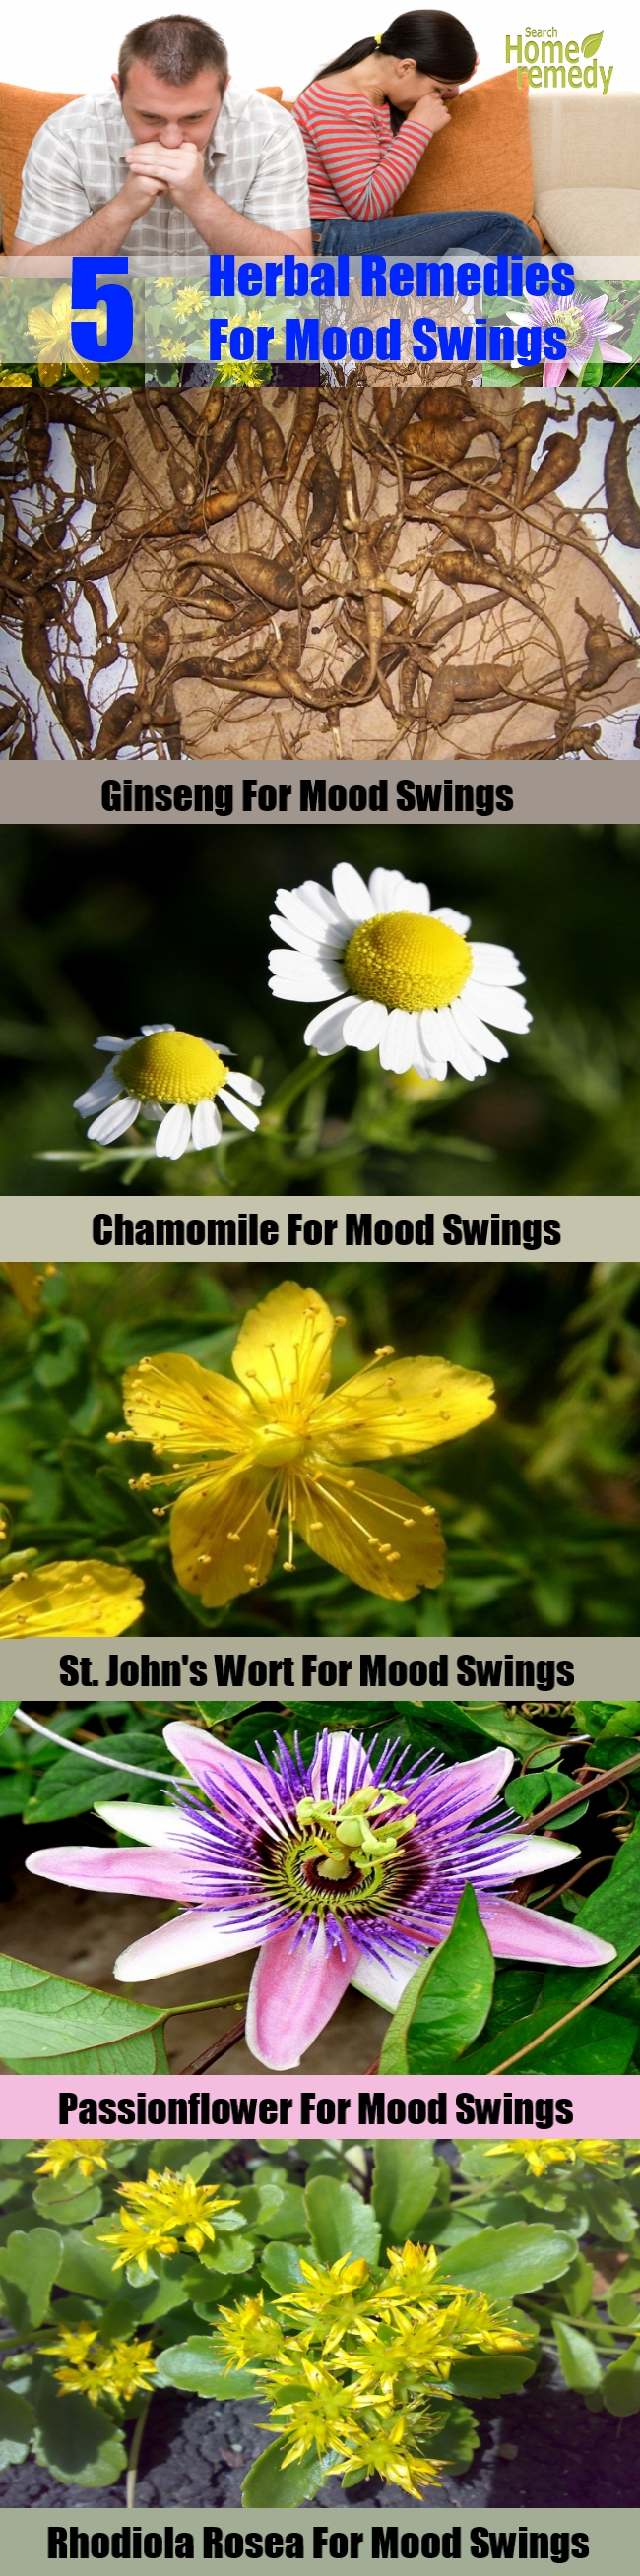 5 Top Herbal Remedies For Mood Swings